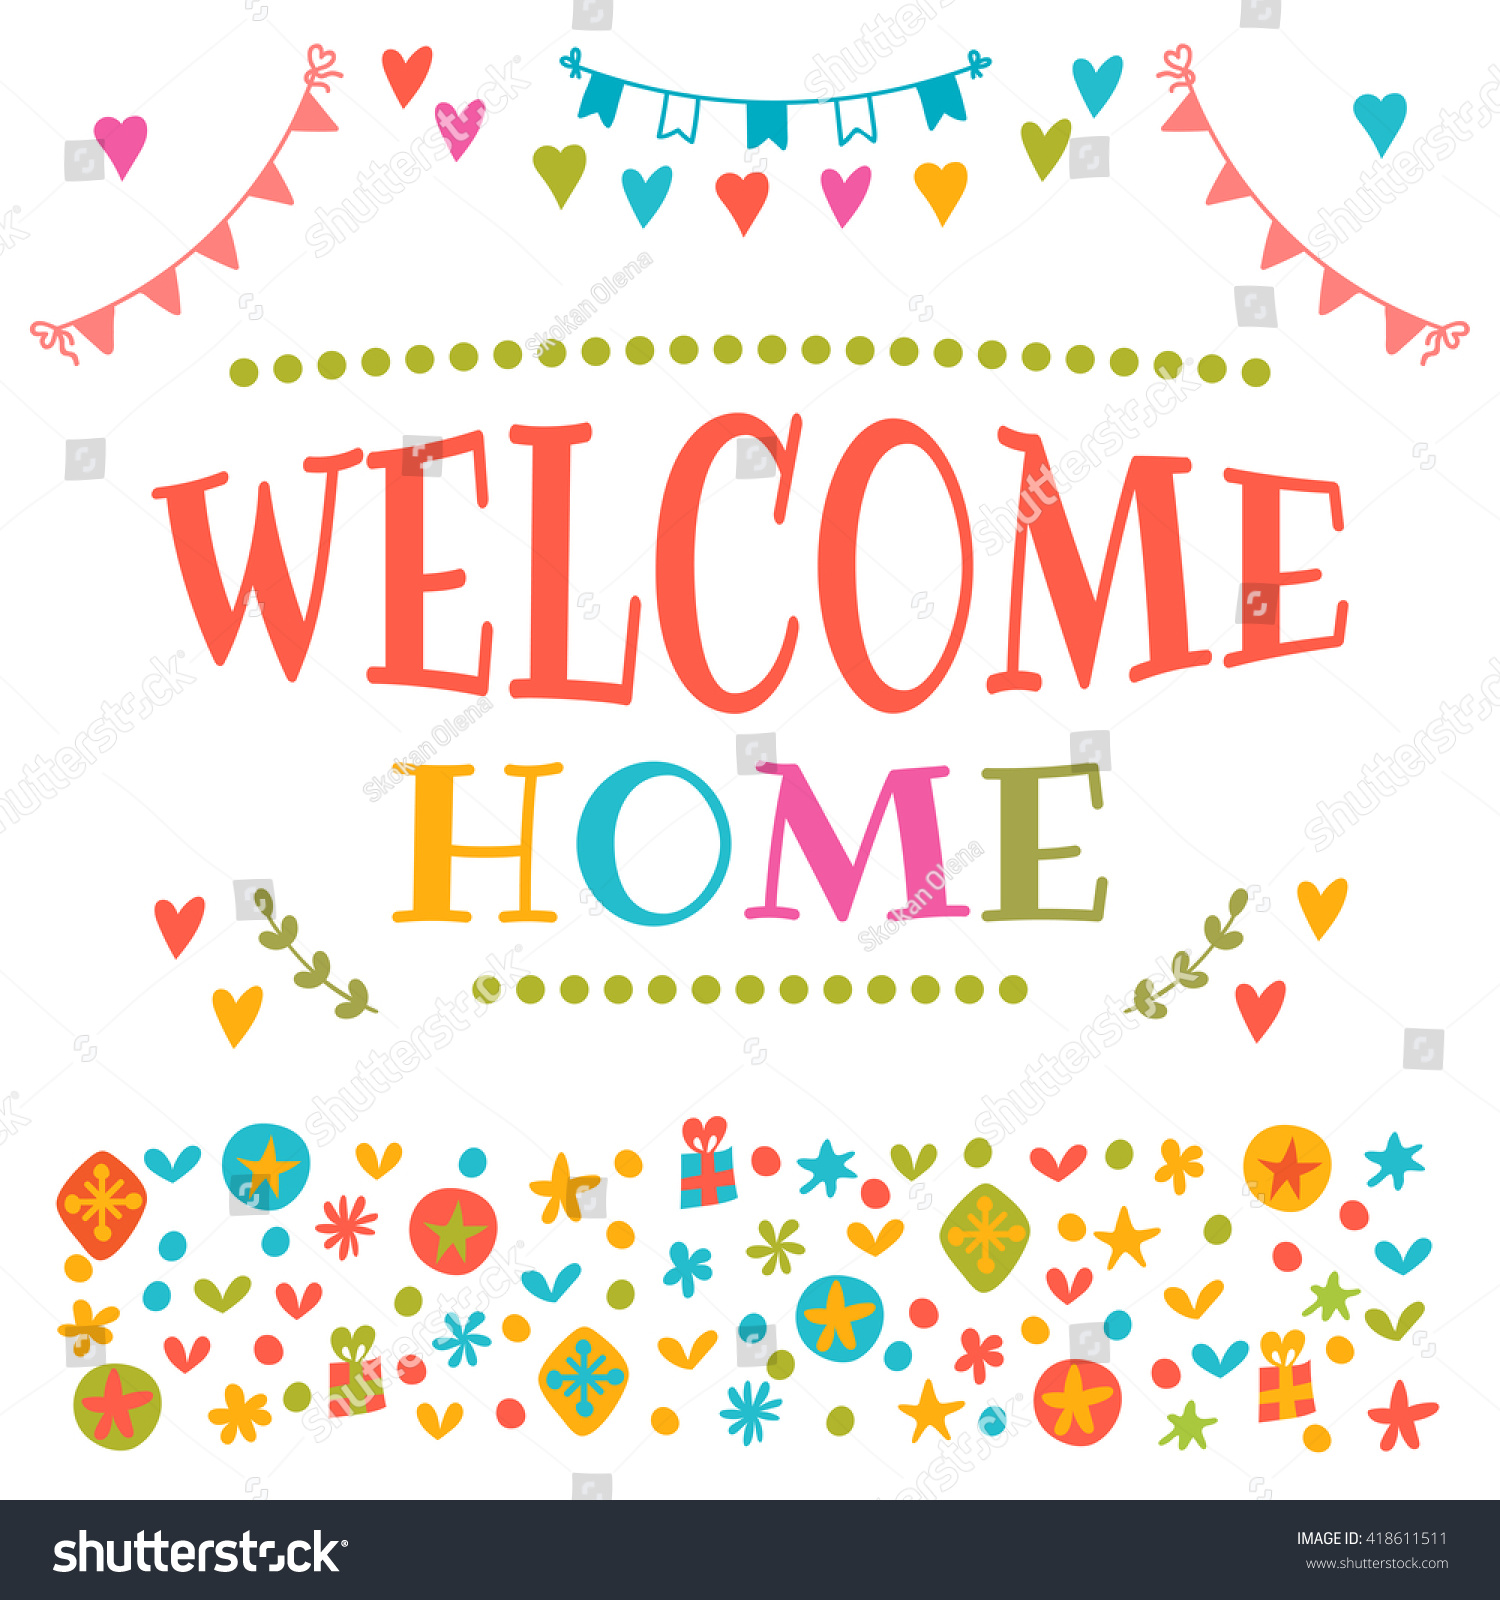 Welcome Home Text Colorful Design Elements Stock Vector 418611511